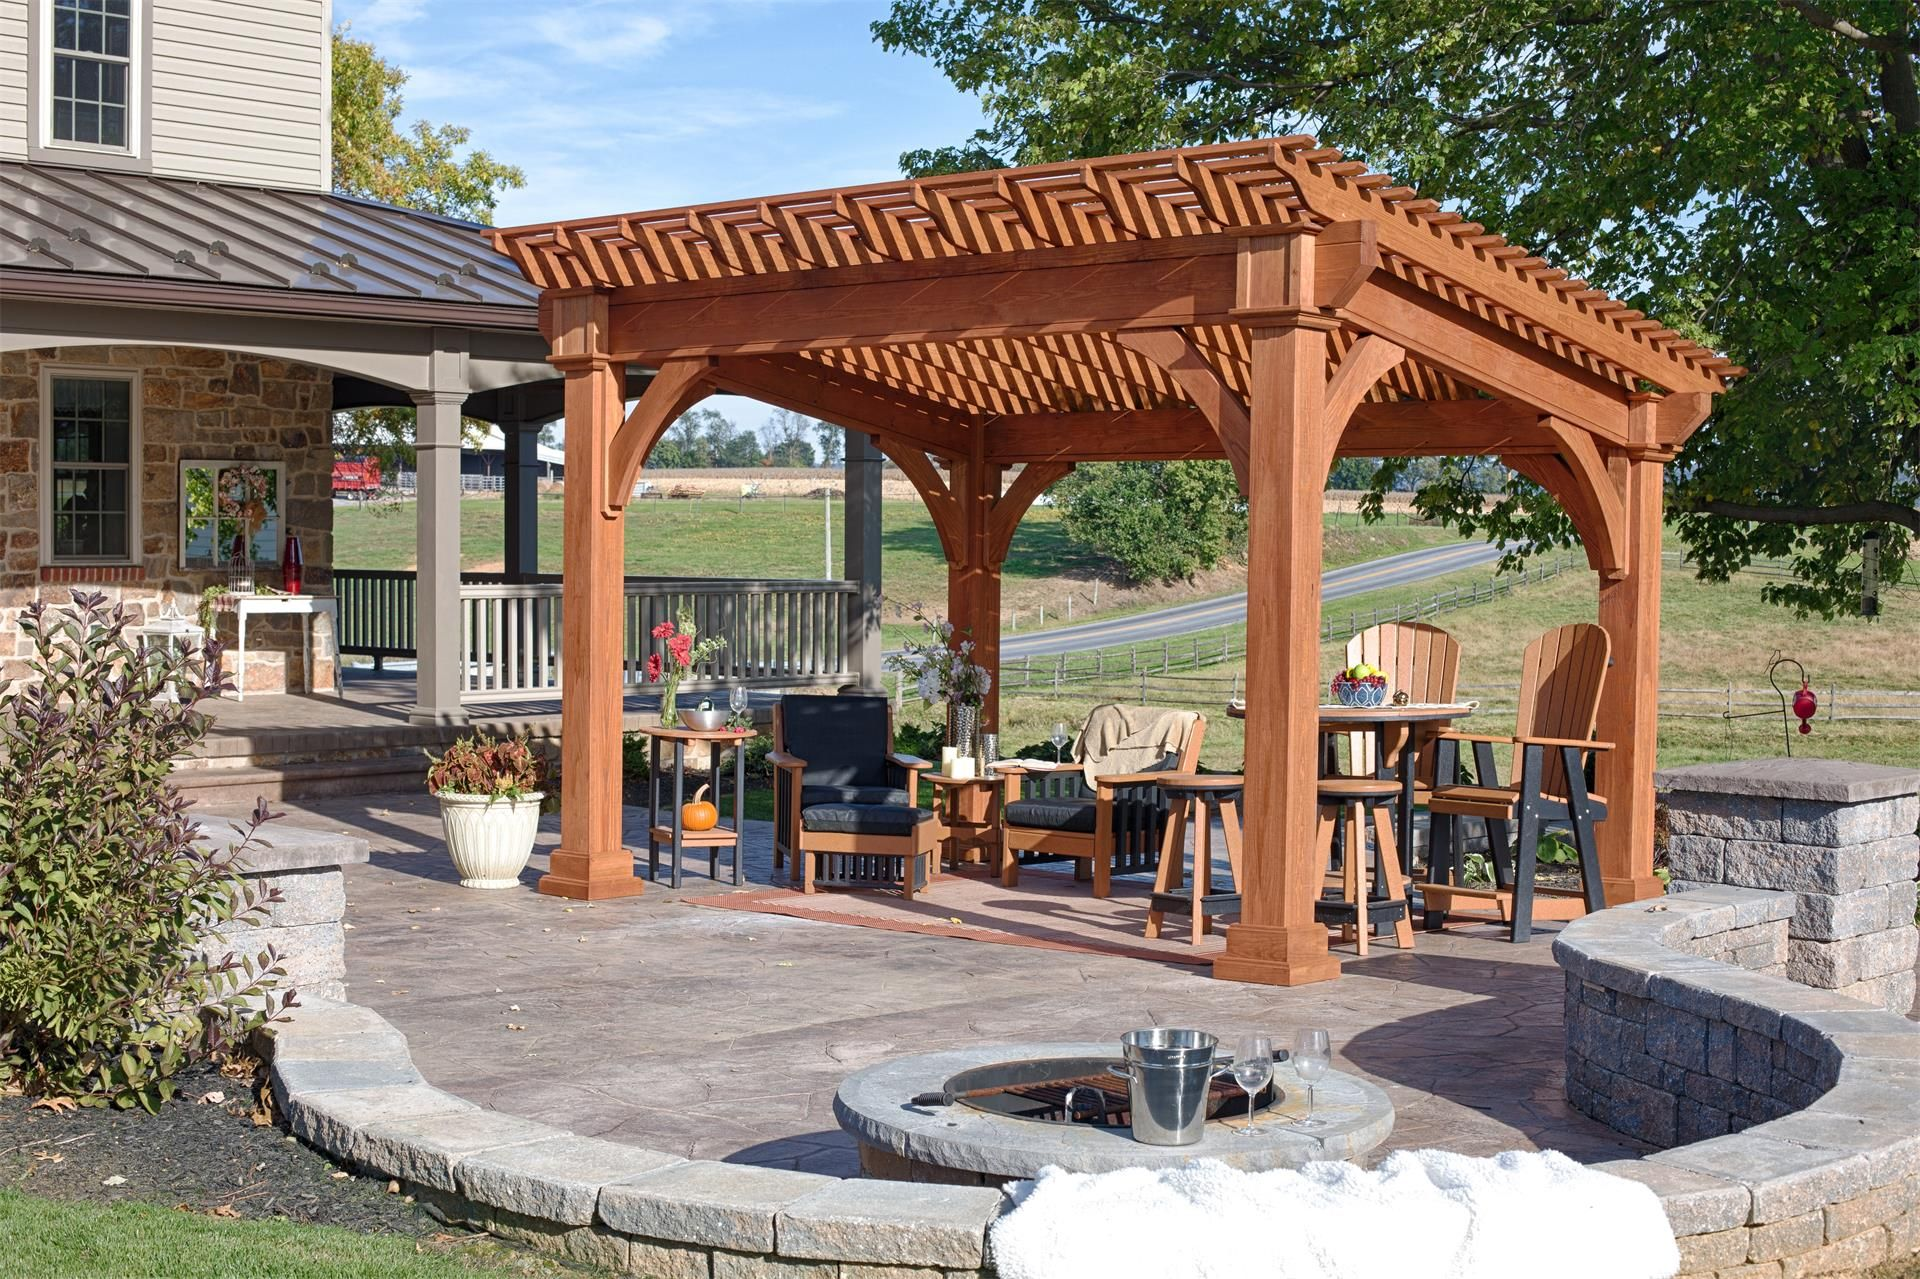 Amish Santa Fe Pine Pergola Kit Backyard Pavilion Outdoor Pavilion Modern Gazebo